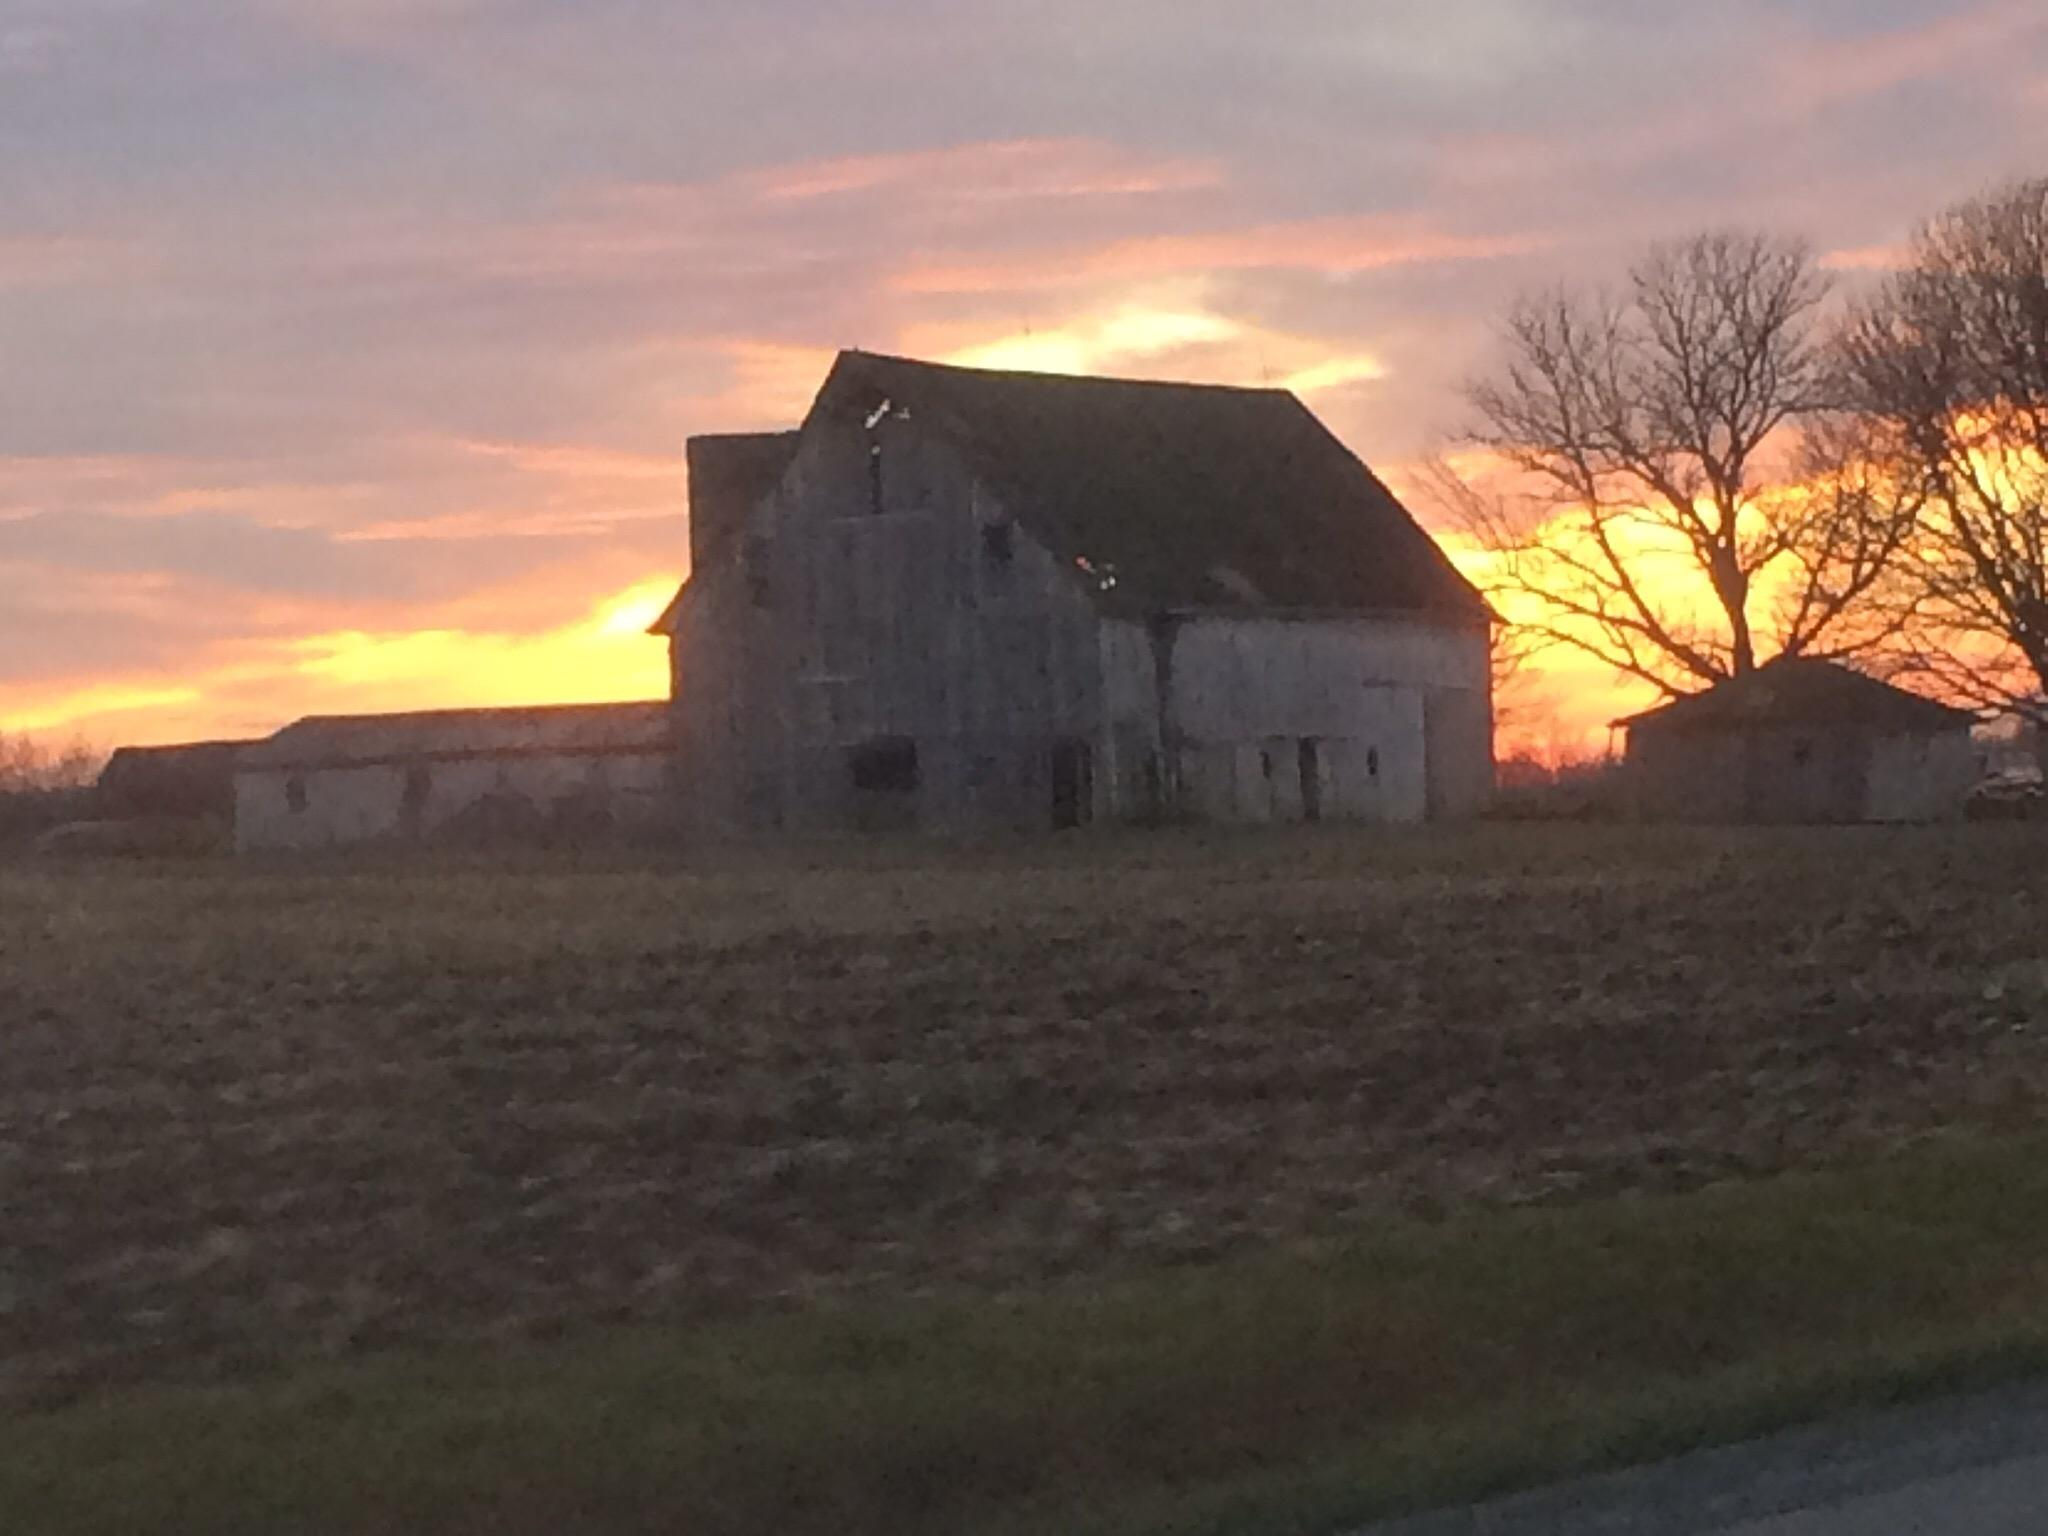 Sunset on the Farm by tracy.alderson.96